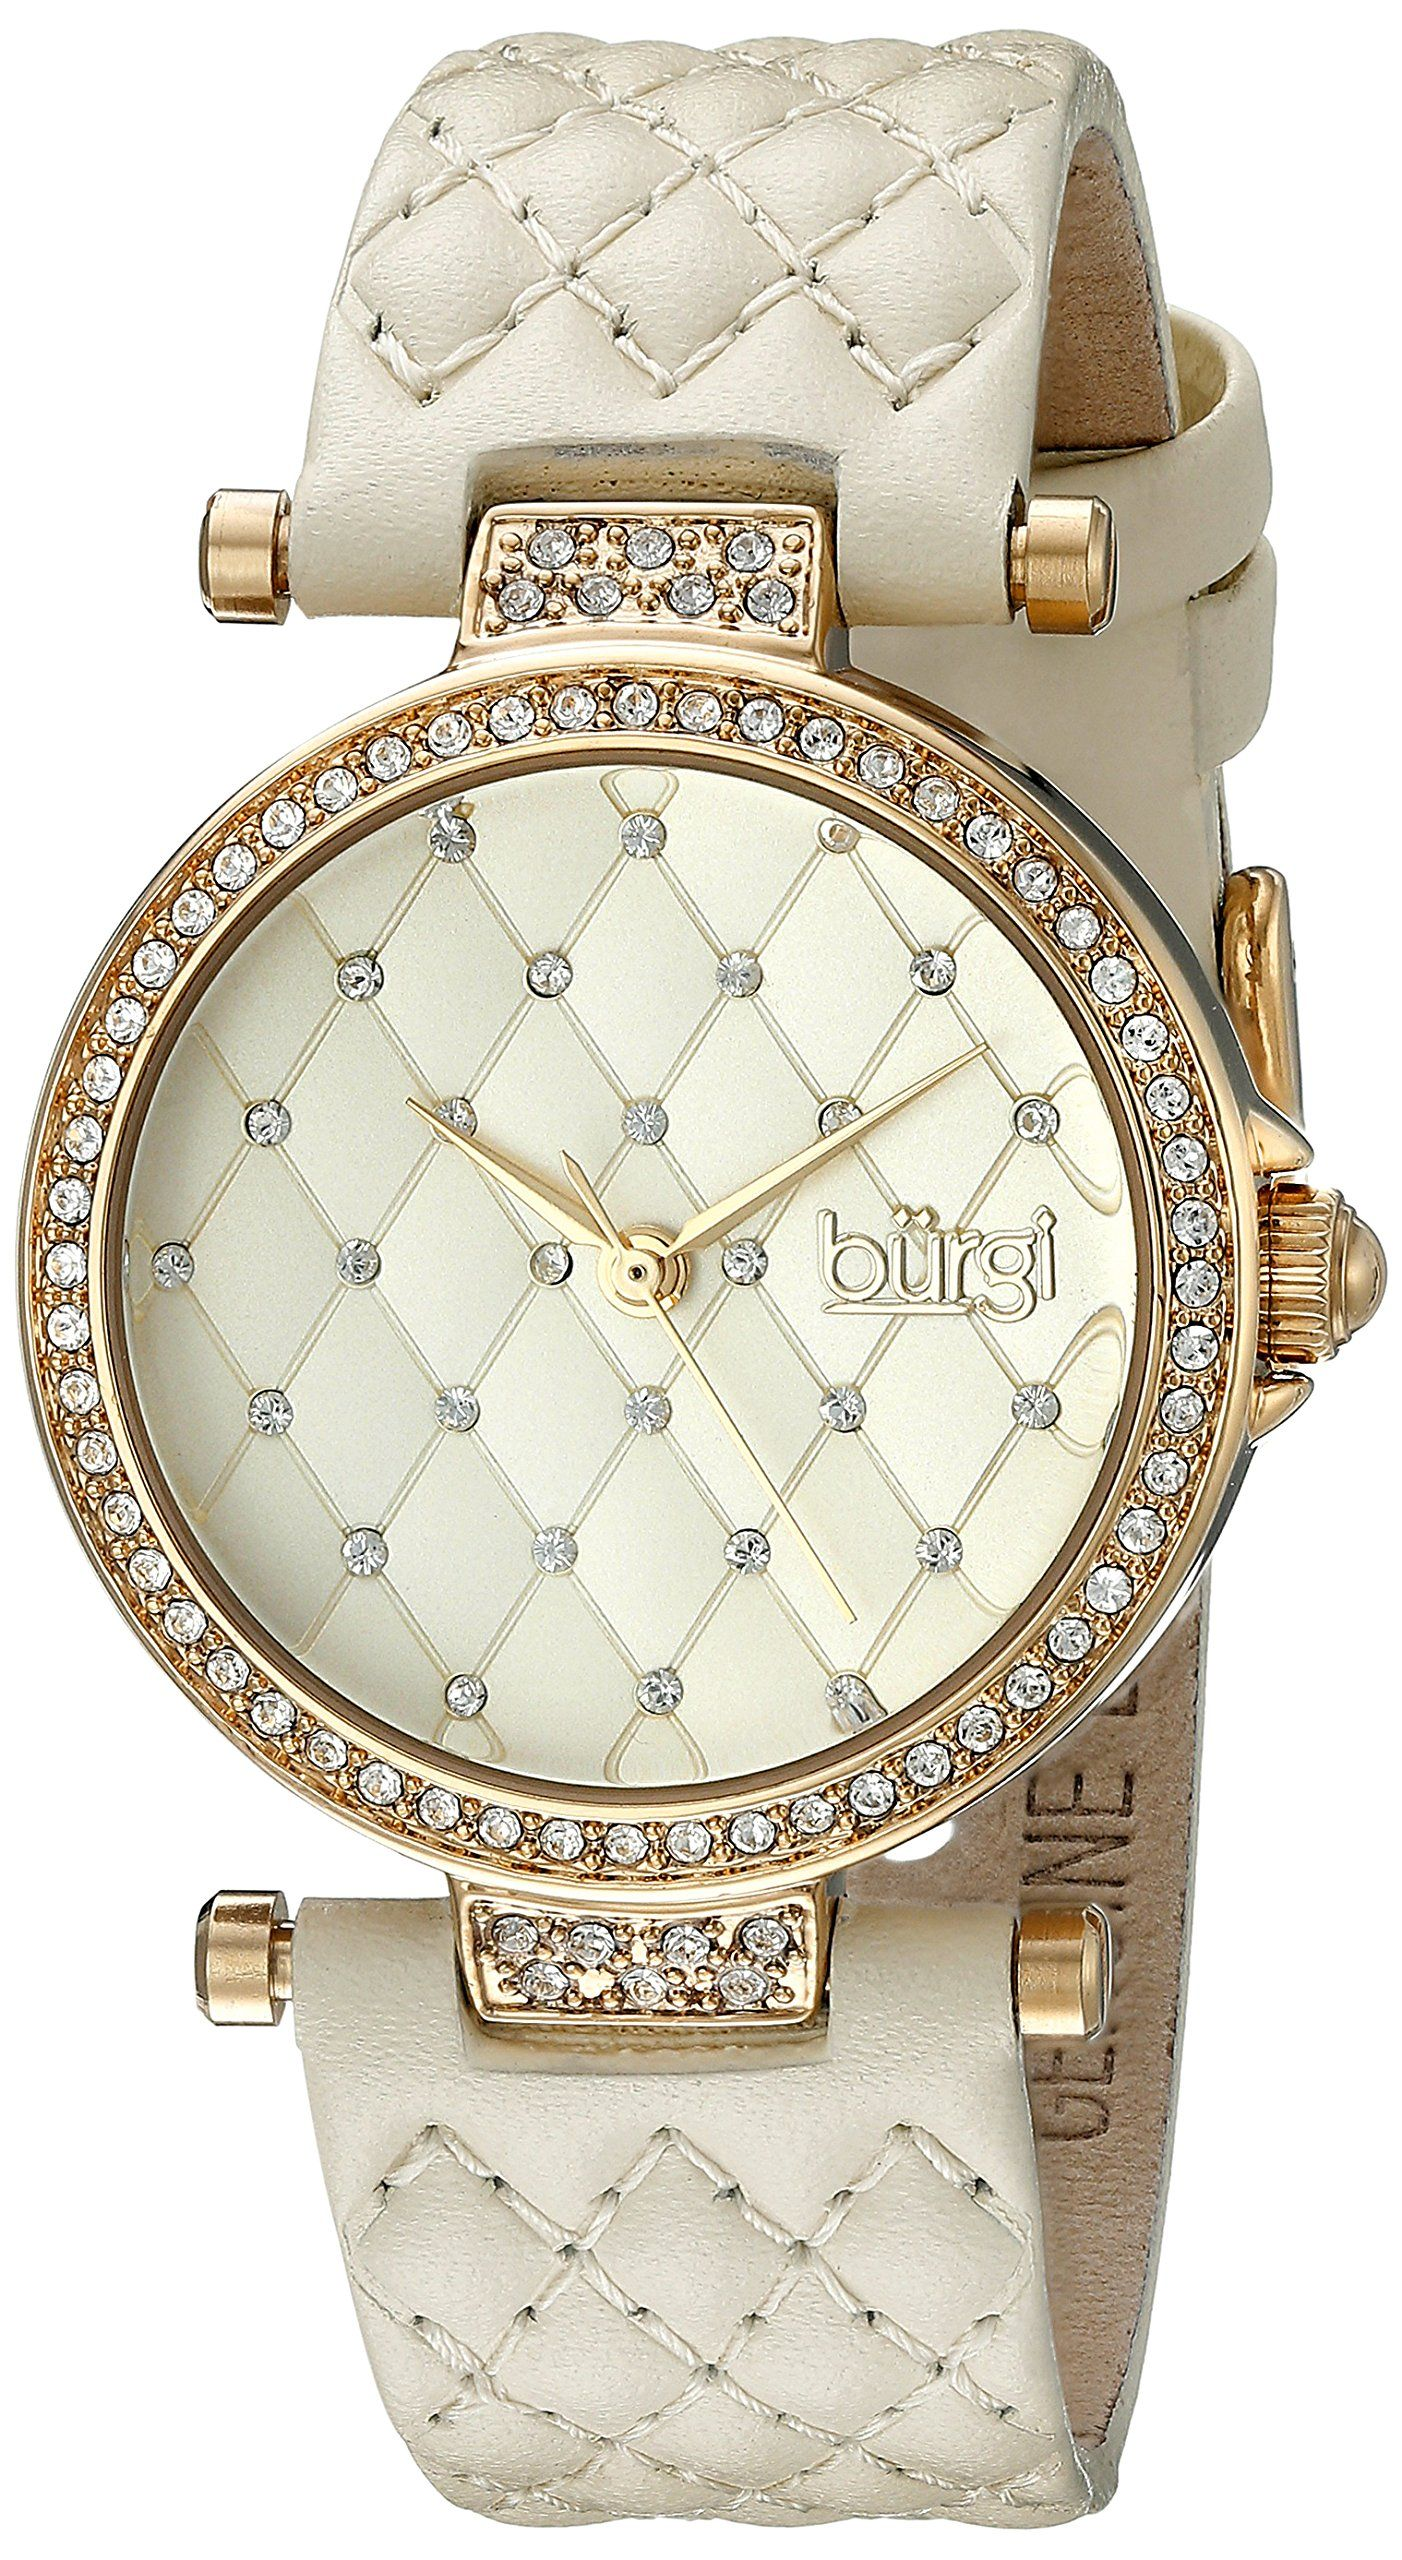 Burgi Women's BUR154 Gold-Tone Swarovski Crystal Watch With Quilted Band.